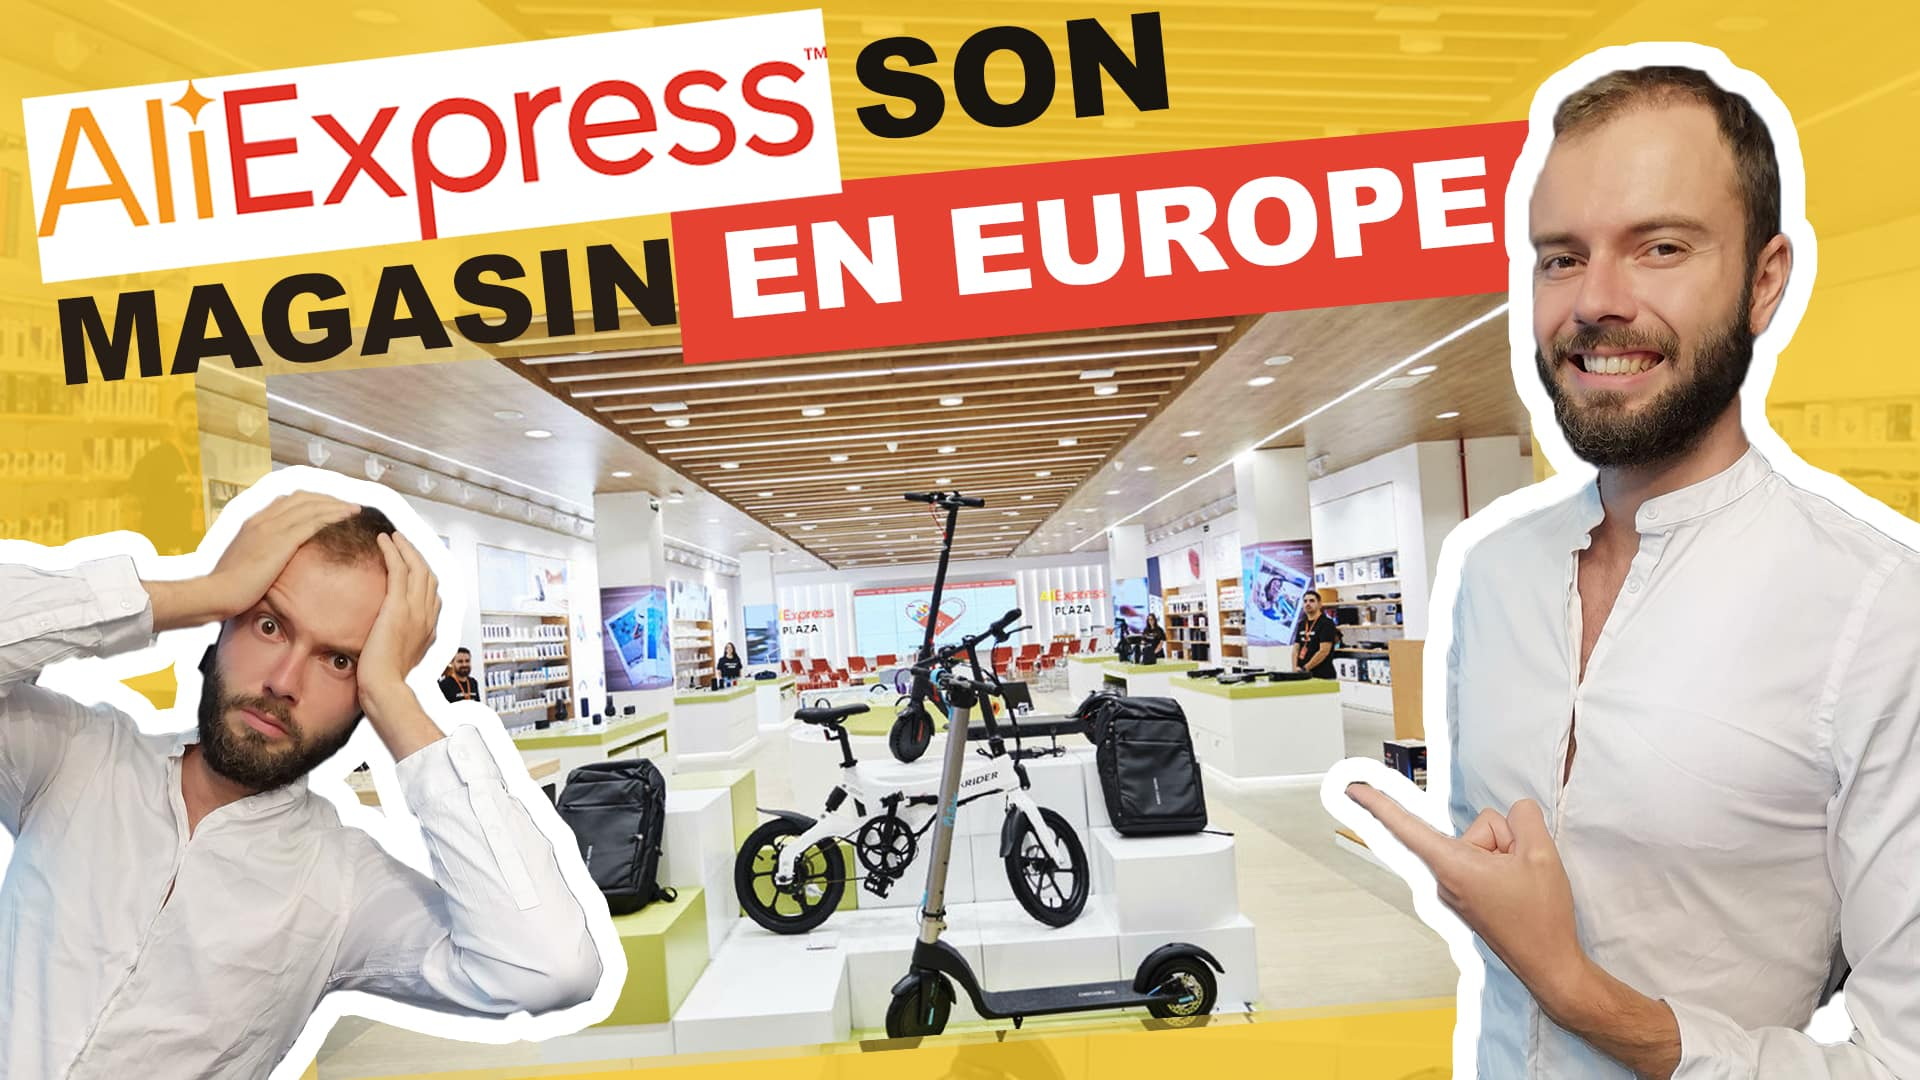 Aliexpress – son magasin à madrid en europe